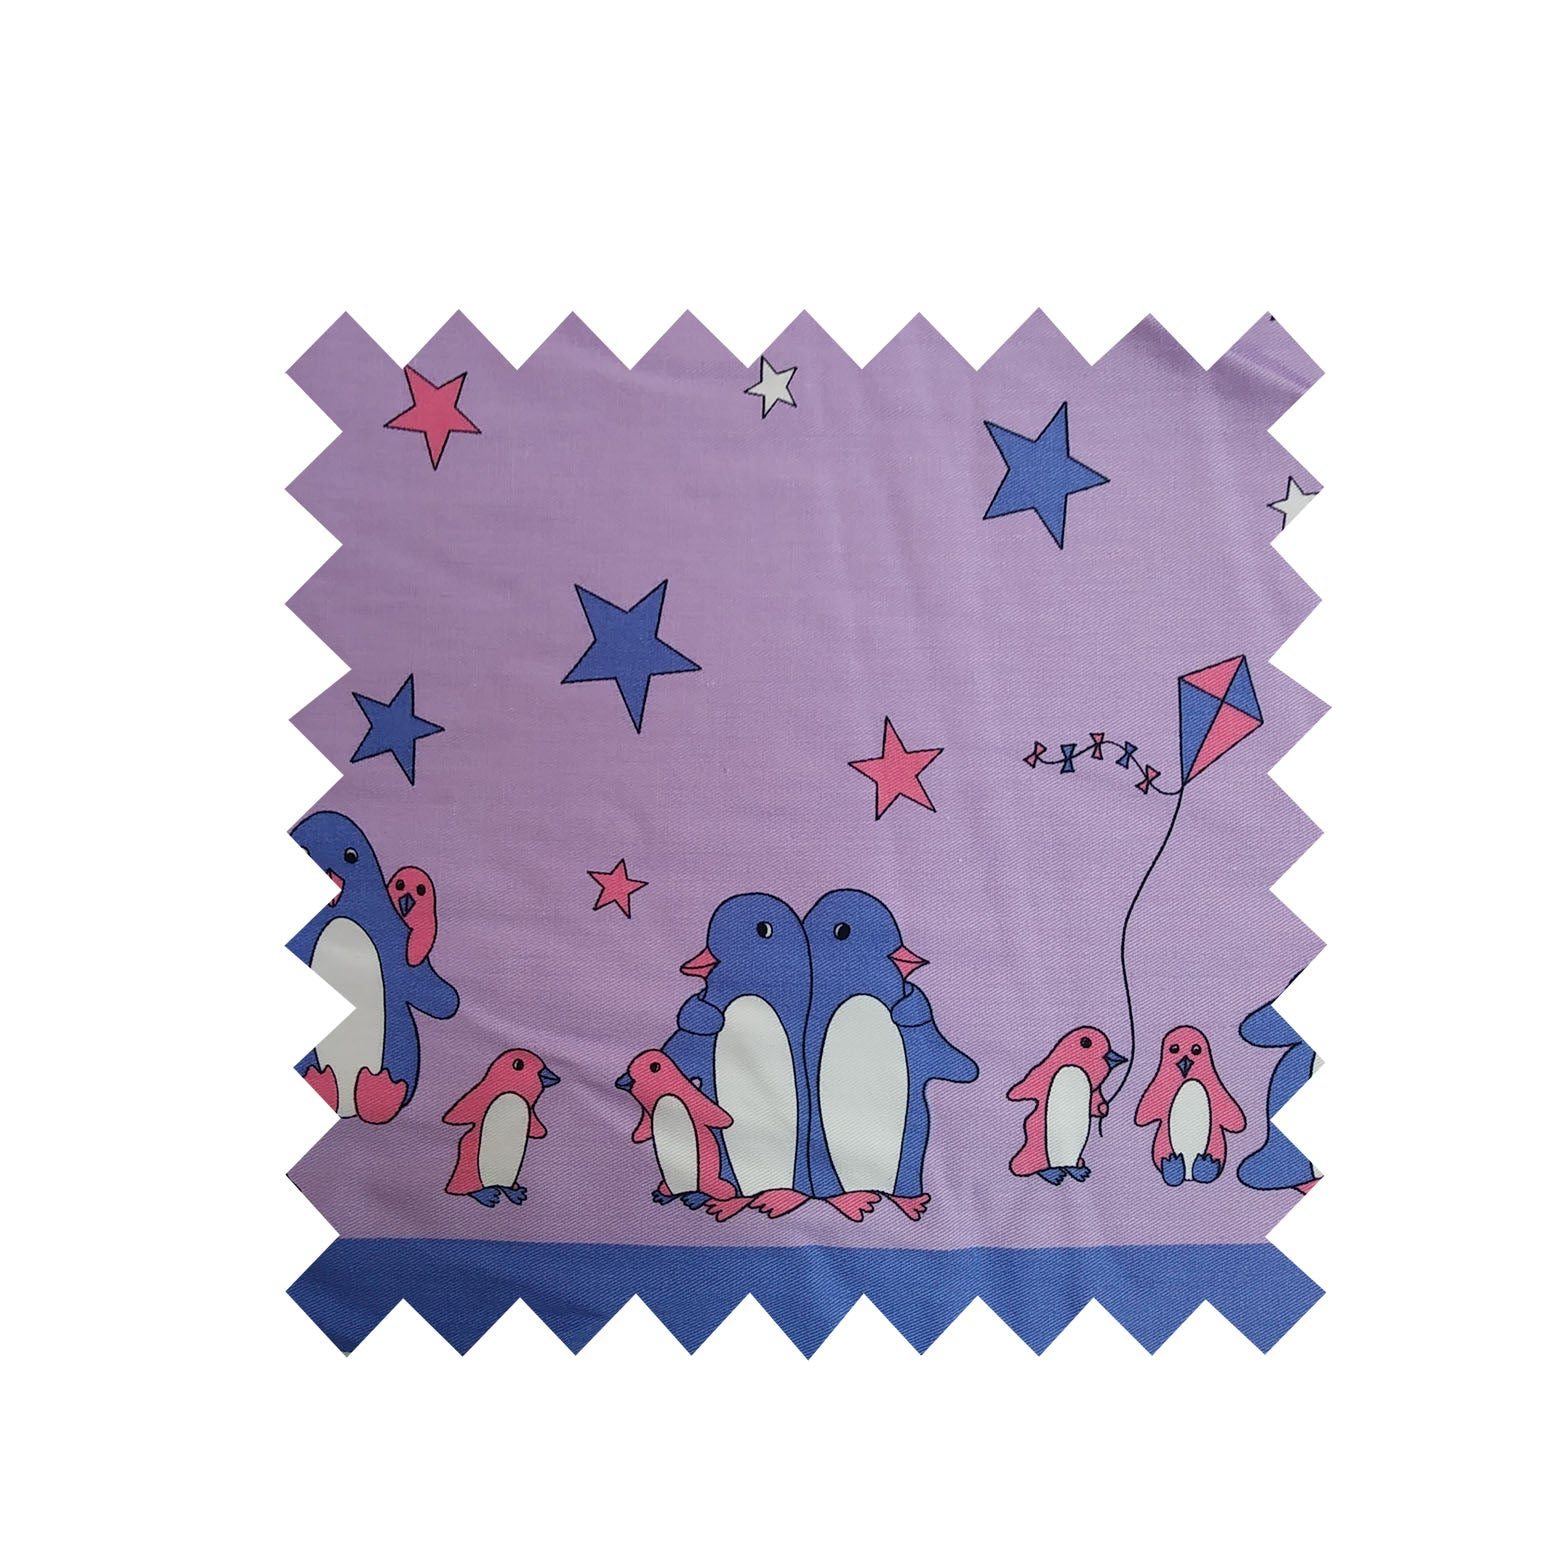 2m Remnant of Lilac Penguin Fabric - Cotton twill Fabric